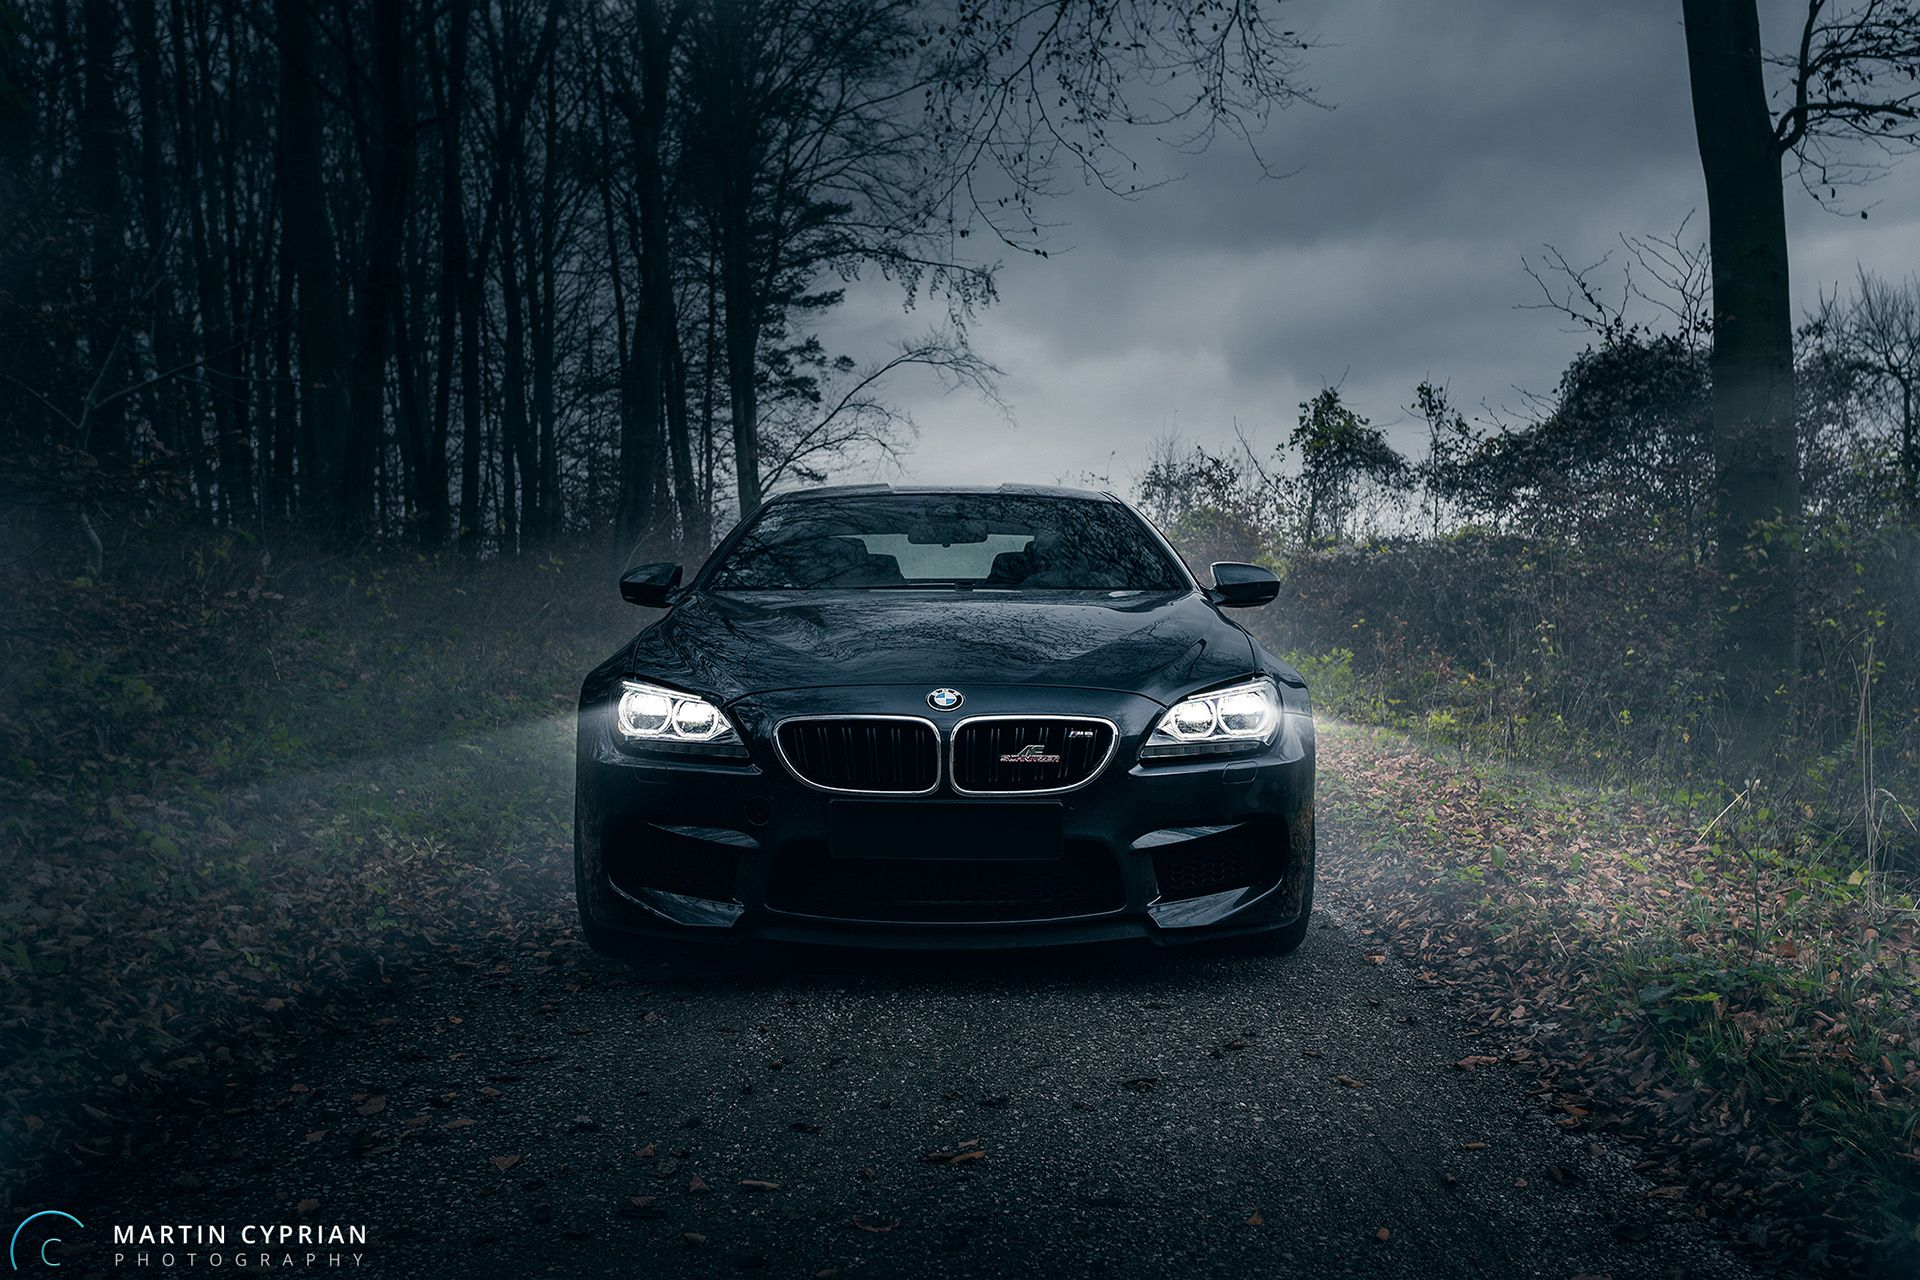 Bmw M6 Coupe Photoshoot In The Dark Bmw Black Bmw M6 Bmw Wallpapers